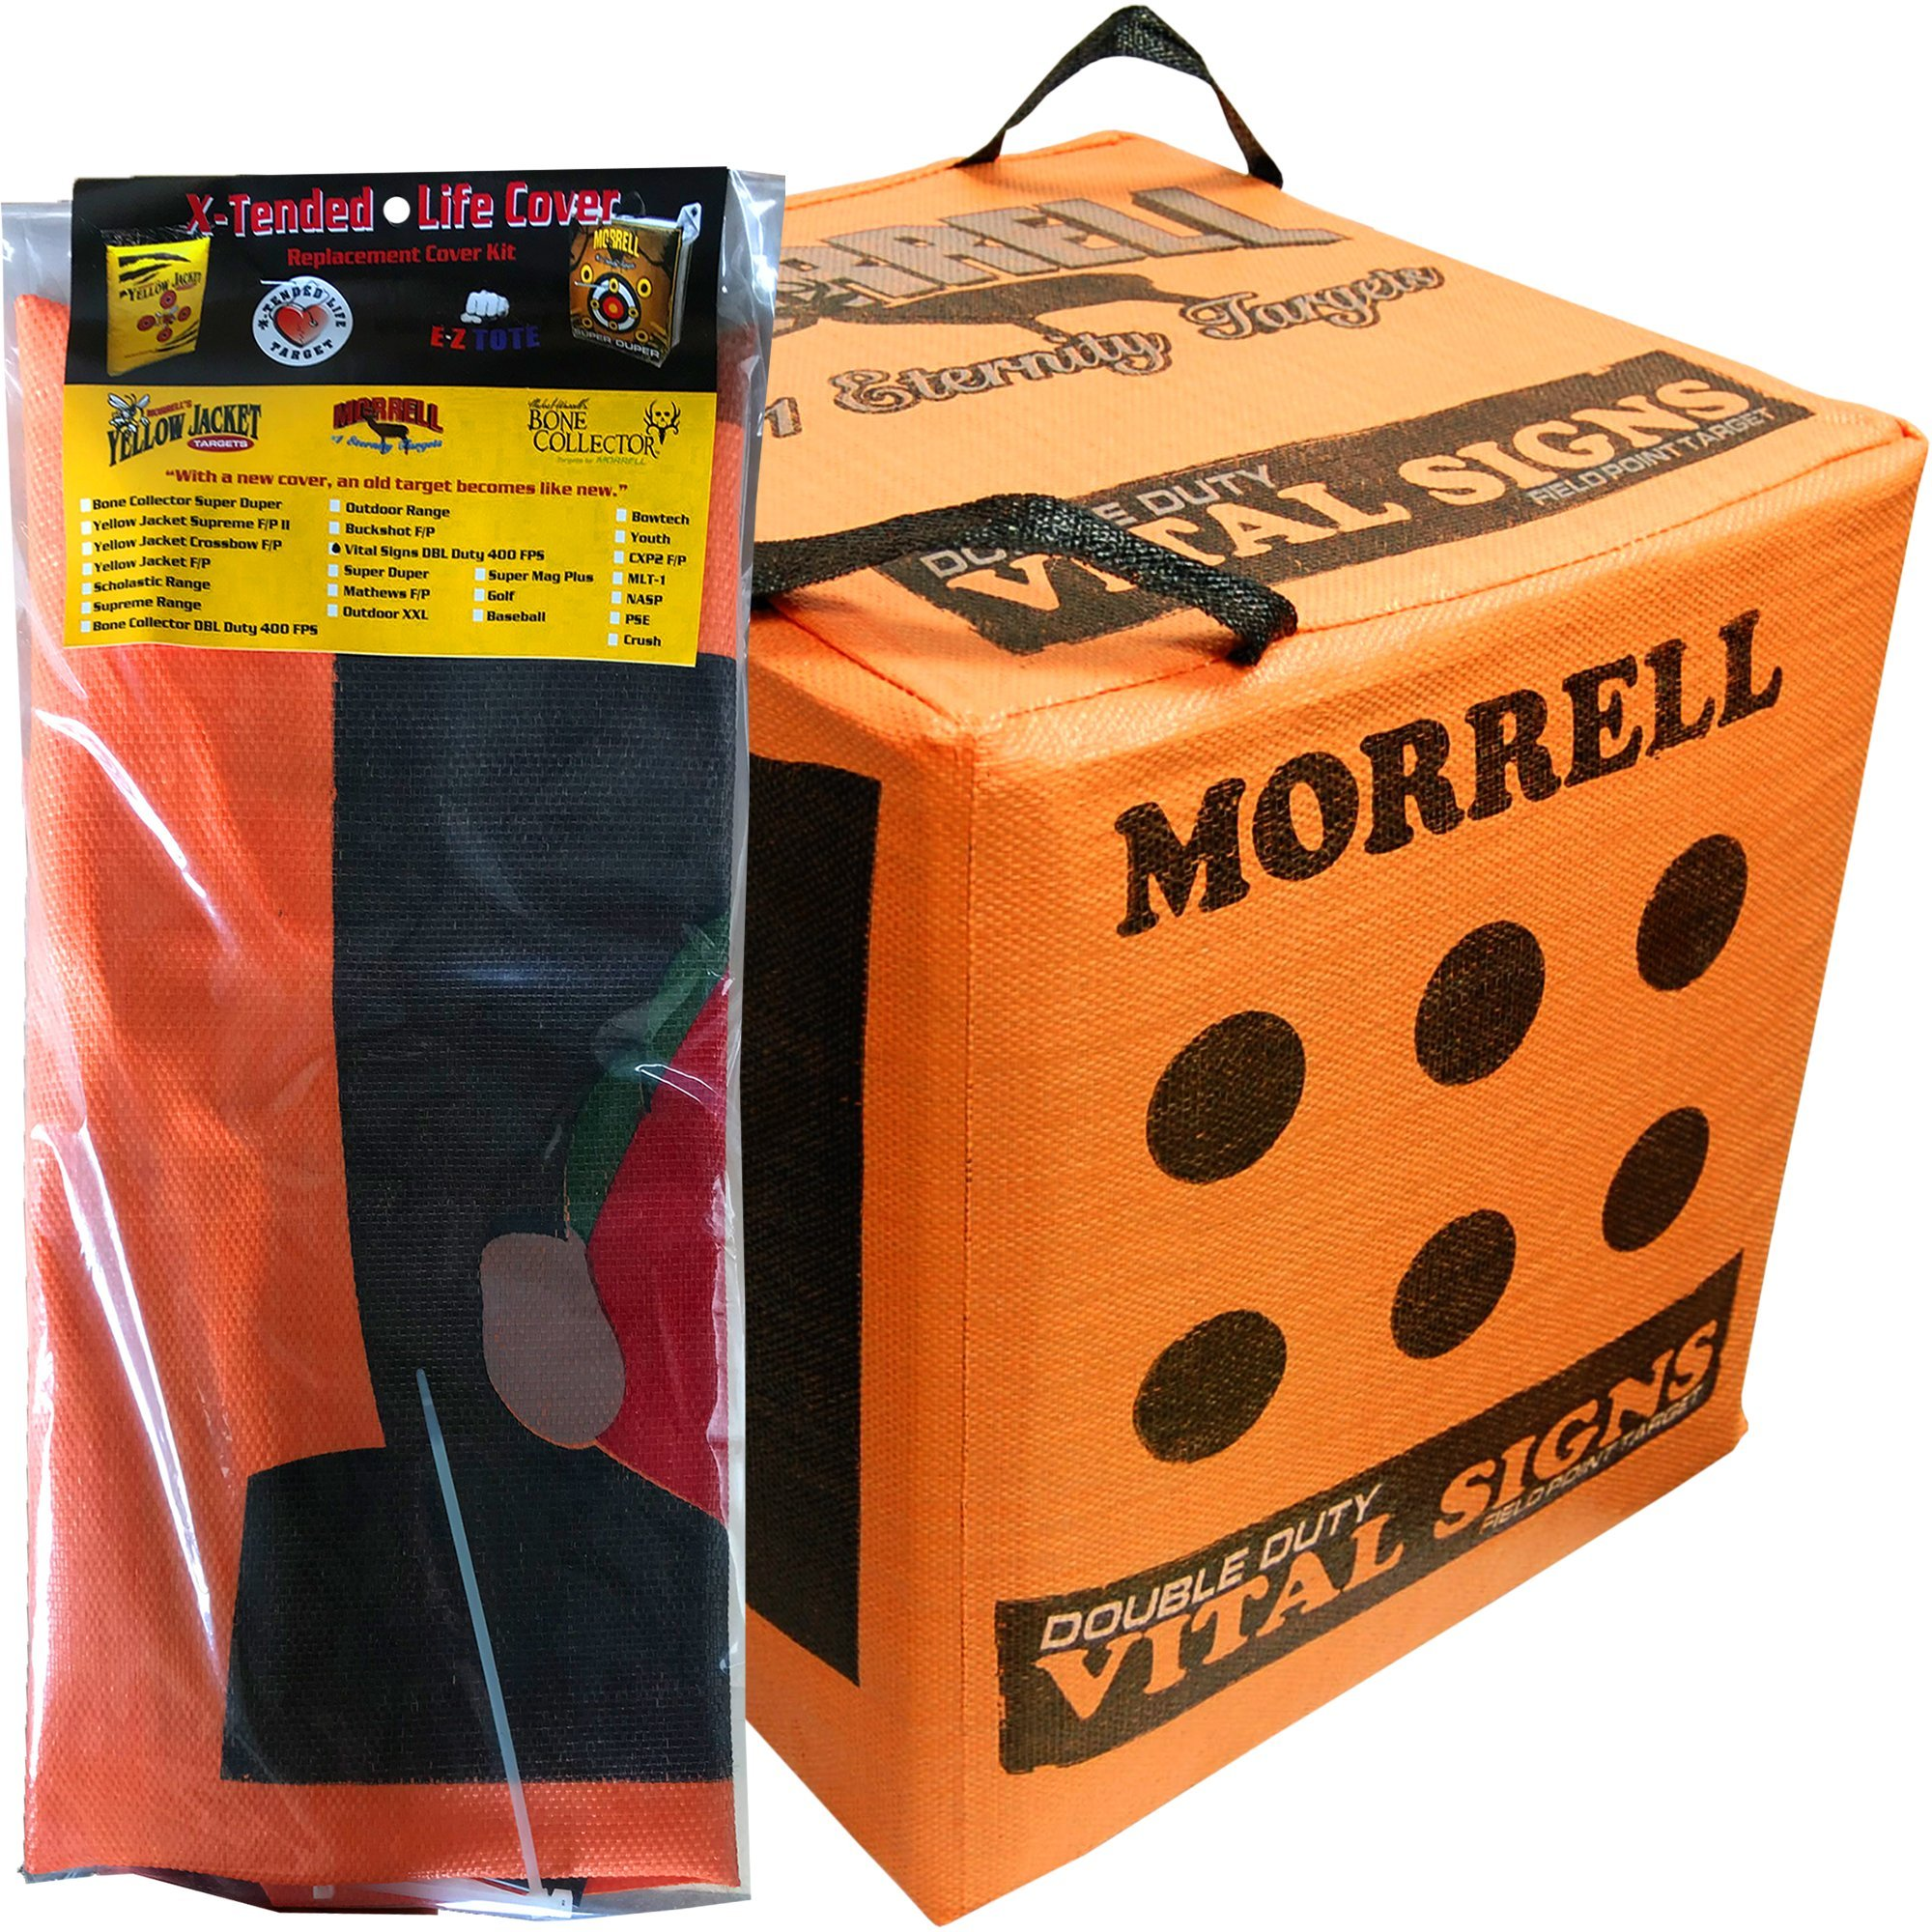 Morrell Double Duty Vital Signs Field Point Bag Cube Archery Target Replacement Cover (COVER ONLY)